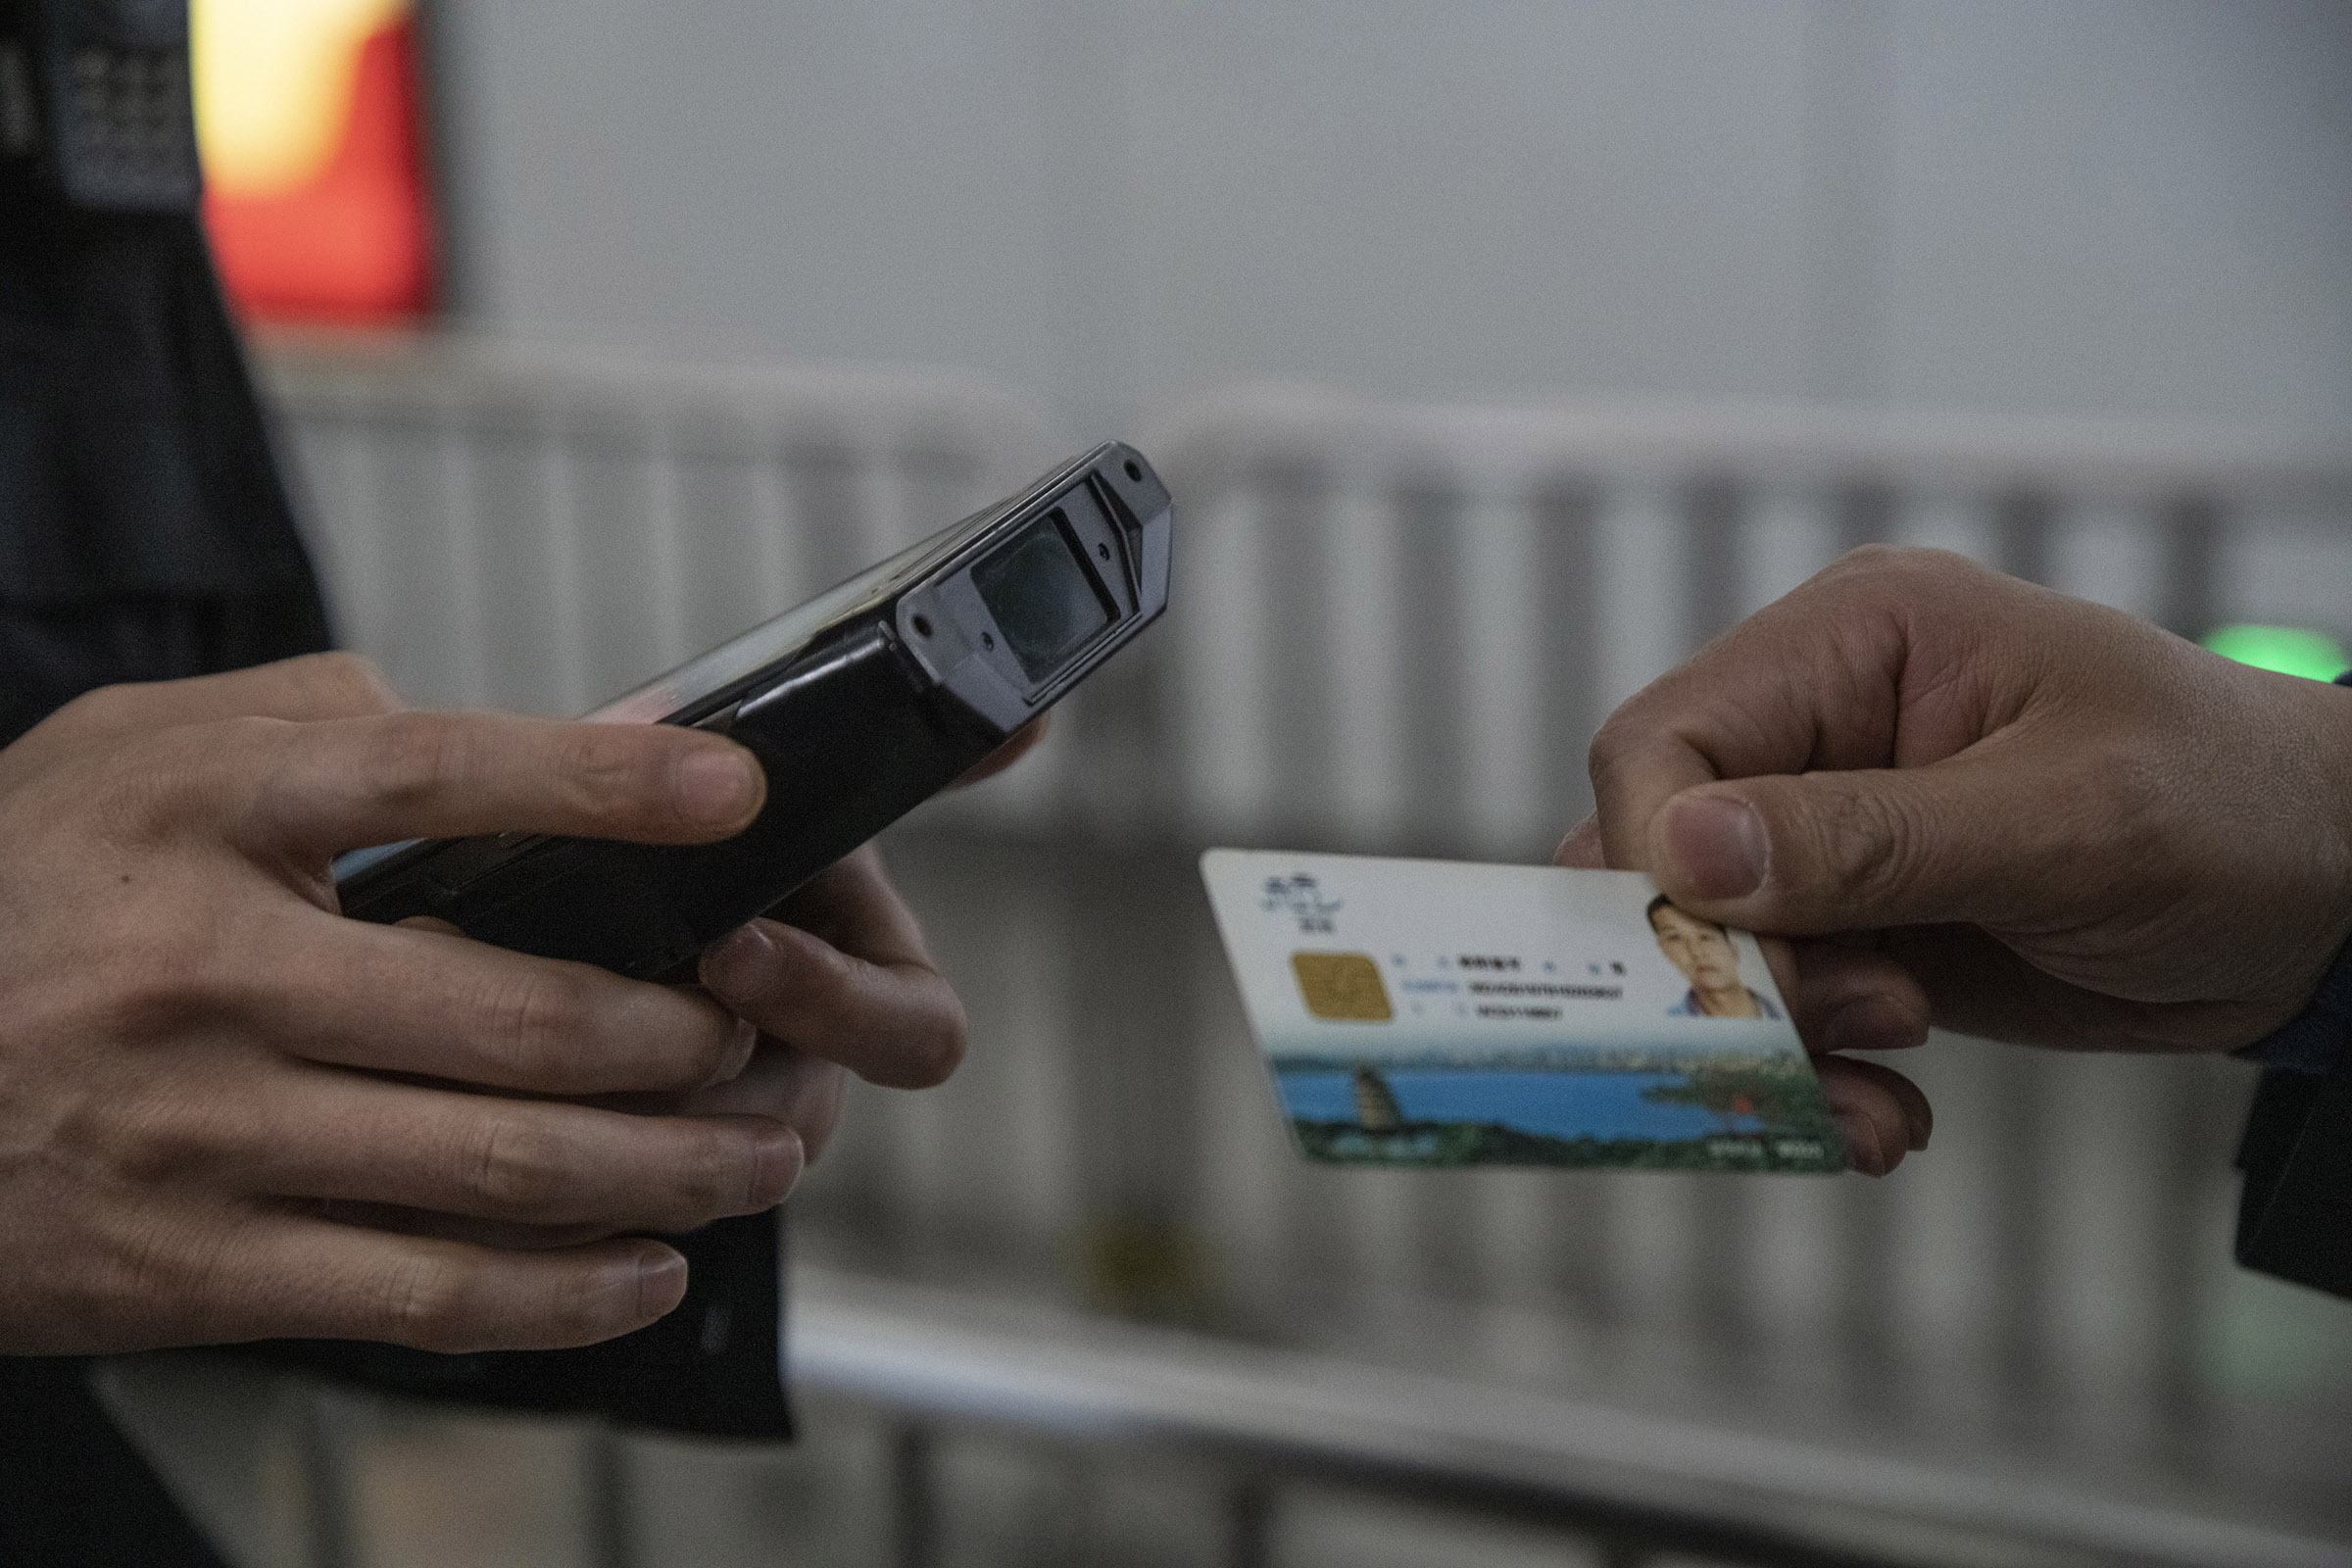 At a security checkpoint in Hangzhou, a pedestrian is handing his city smart ID card to a policeman equipped with a scanner. The card featuring a microchip, contains a large amount of private data allowing him to use city services (health, education,social security funds  transport..etc) and bill payments. The card is also used for a city wide voluntary social credit rating system which so far has few users.